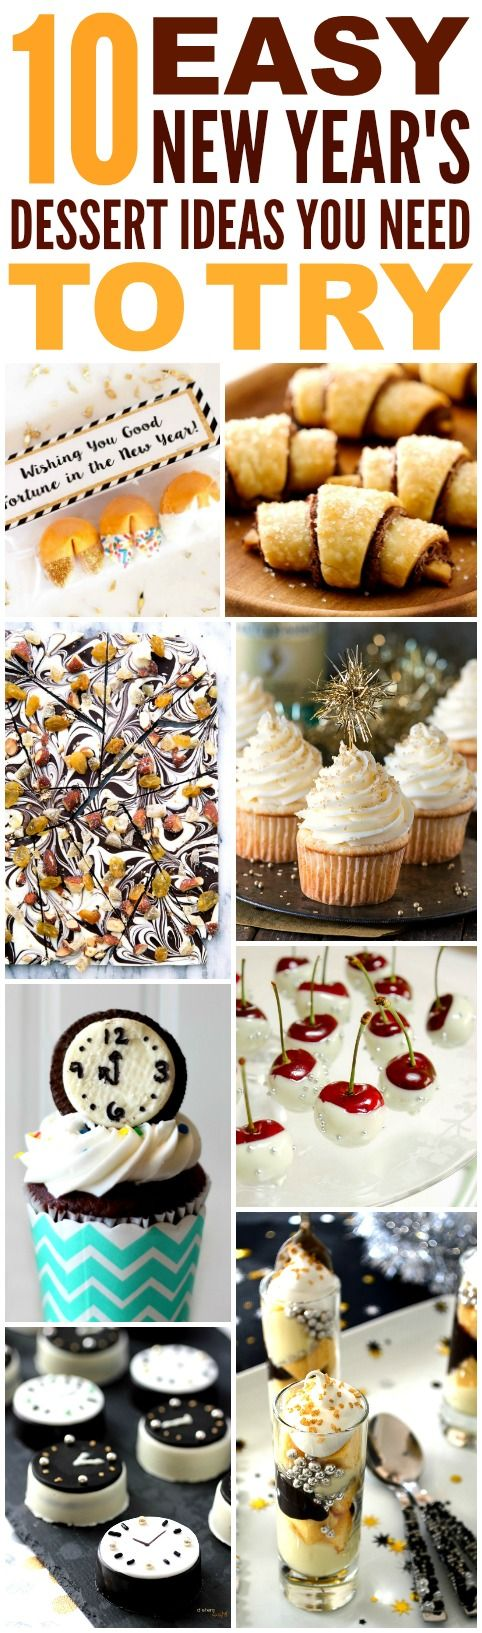 These 10 Easy and Delicious New Year's Dessert Ideas are THE BEST! I'm so glad I found these AMAZING recipes! Now I know what I'll make for the holidays! Definitely pinning!